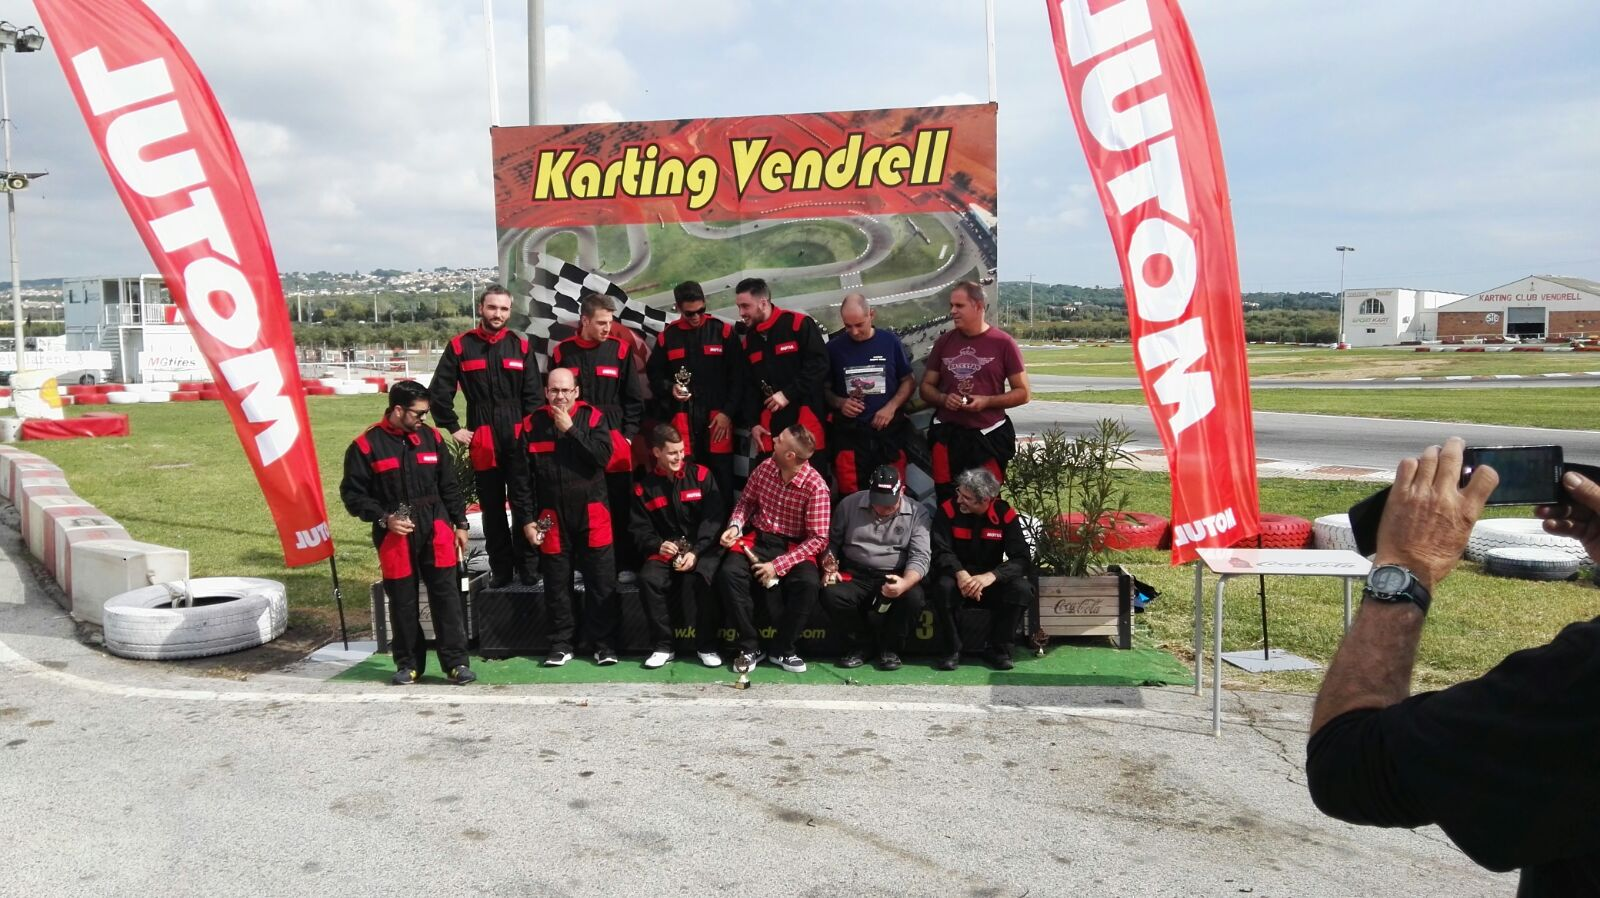 Evento Motul en Karting Vendrell